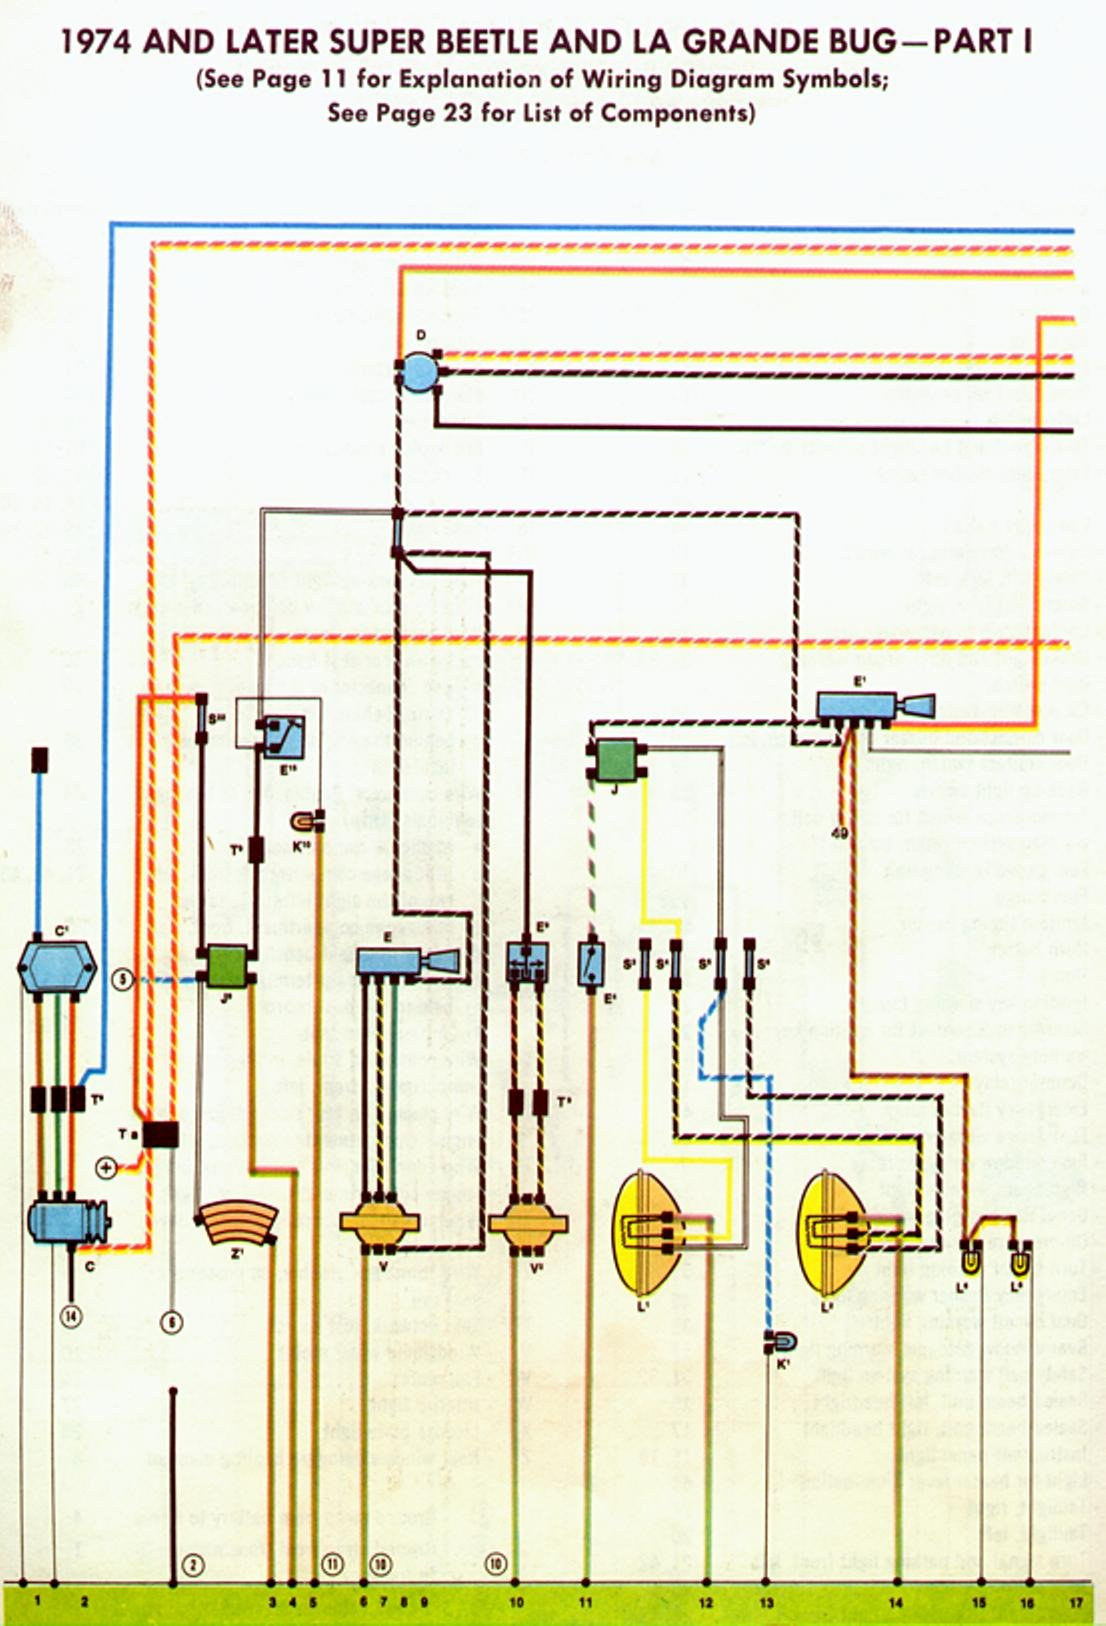 bug 74+75 a 1966 vw bug wiring diagram wiring diagram simonand 1973 vw super beetle wiring harness at creativeand.co